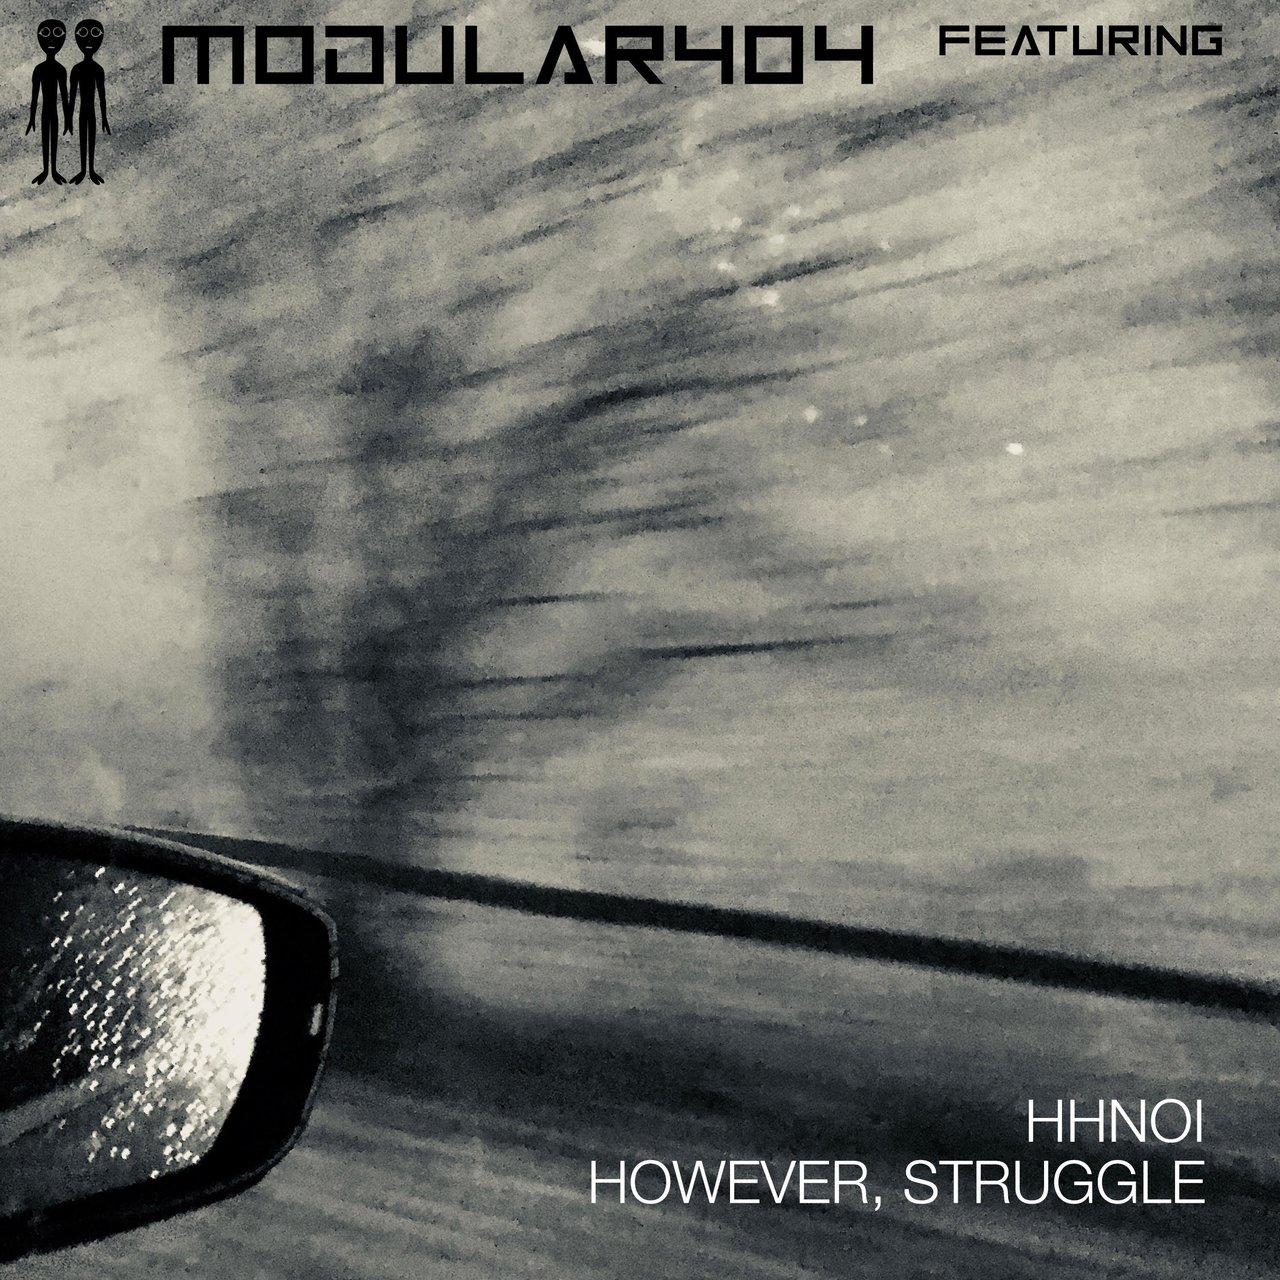 However, Struggle (feat. Hhnoi)